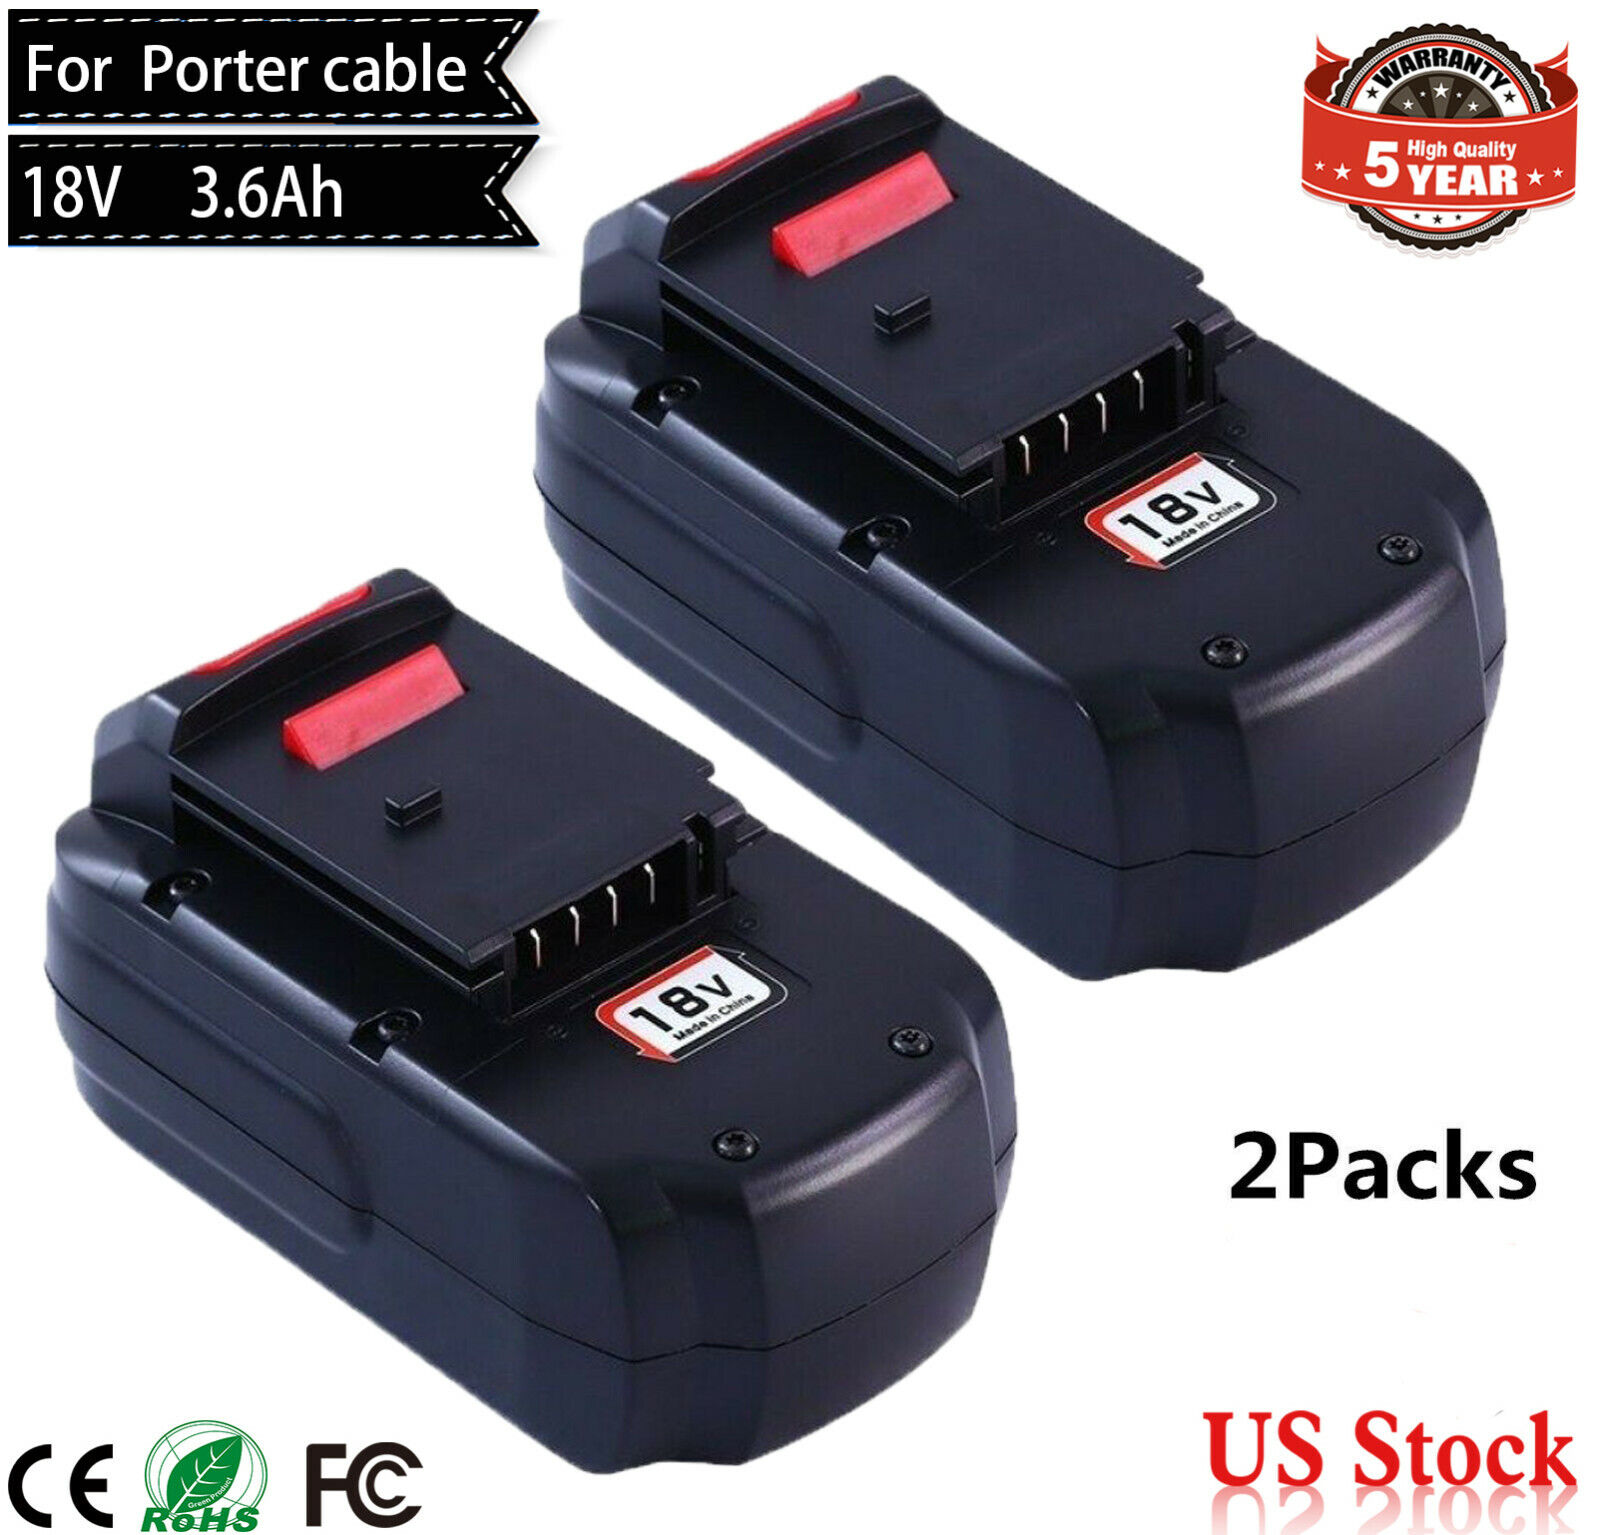 3.6Ah EXTENDED For Porter Cable 18V Battery PC18B PCC489N PC